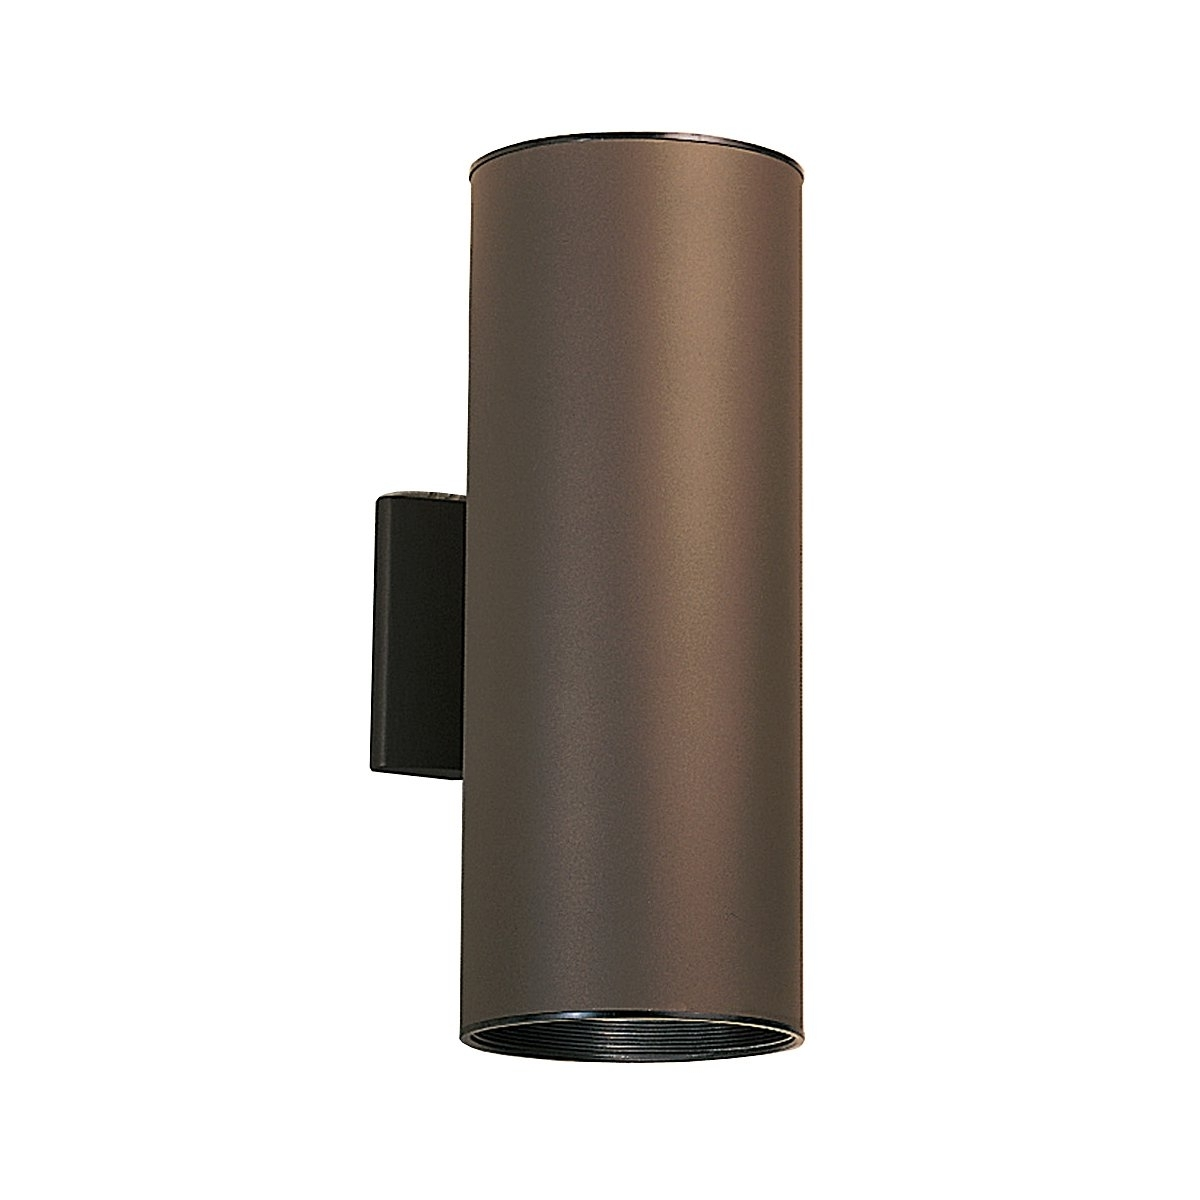 Most Up To Date Light : Wooden Commercial Exterior Wall Lights Brown Simple Stunning For Commercial Outdoor Wall Lighting Fixtures (View 4 of 20)